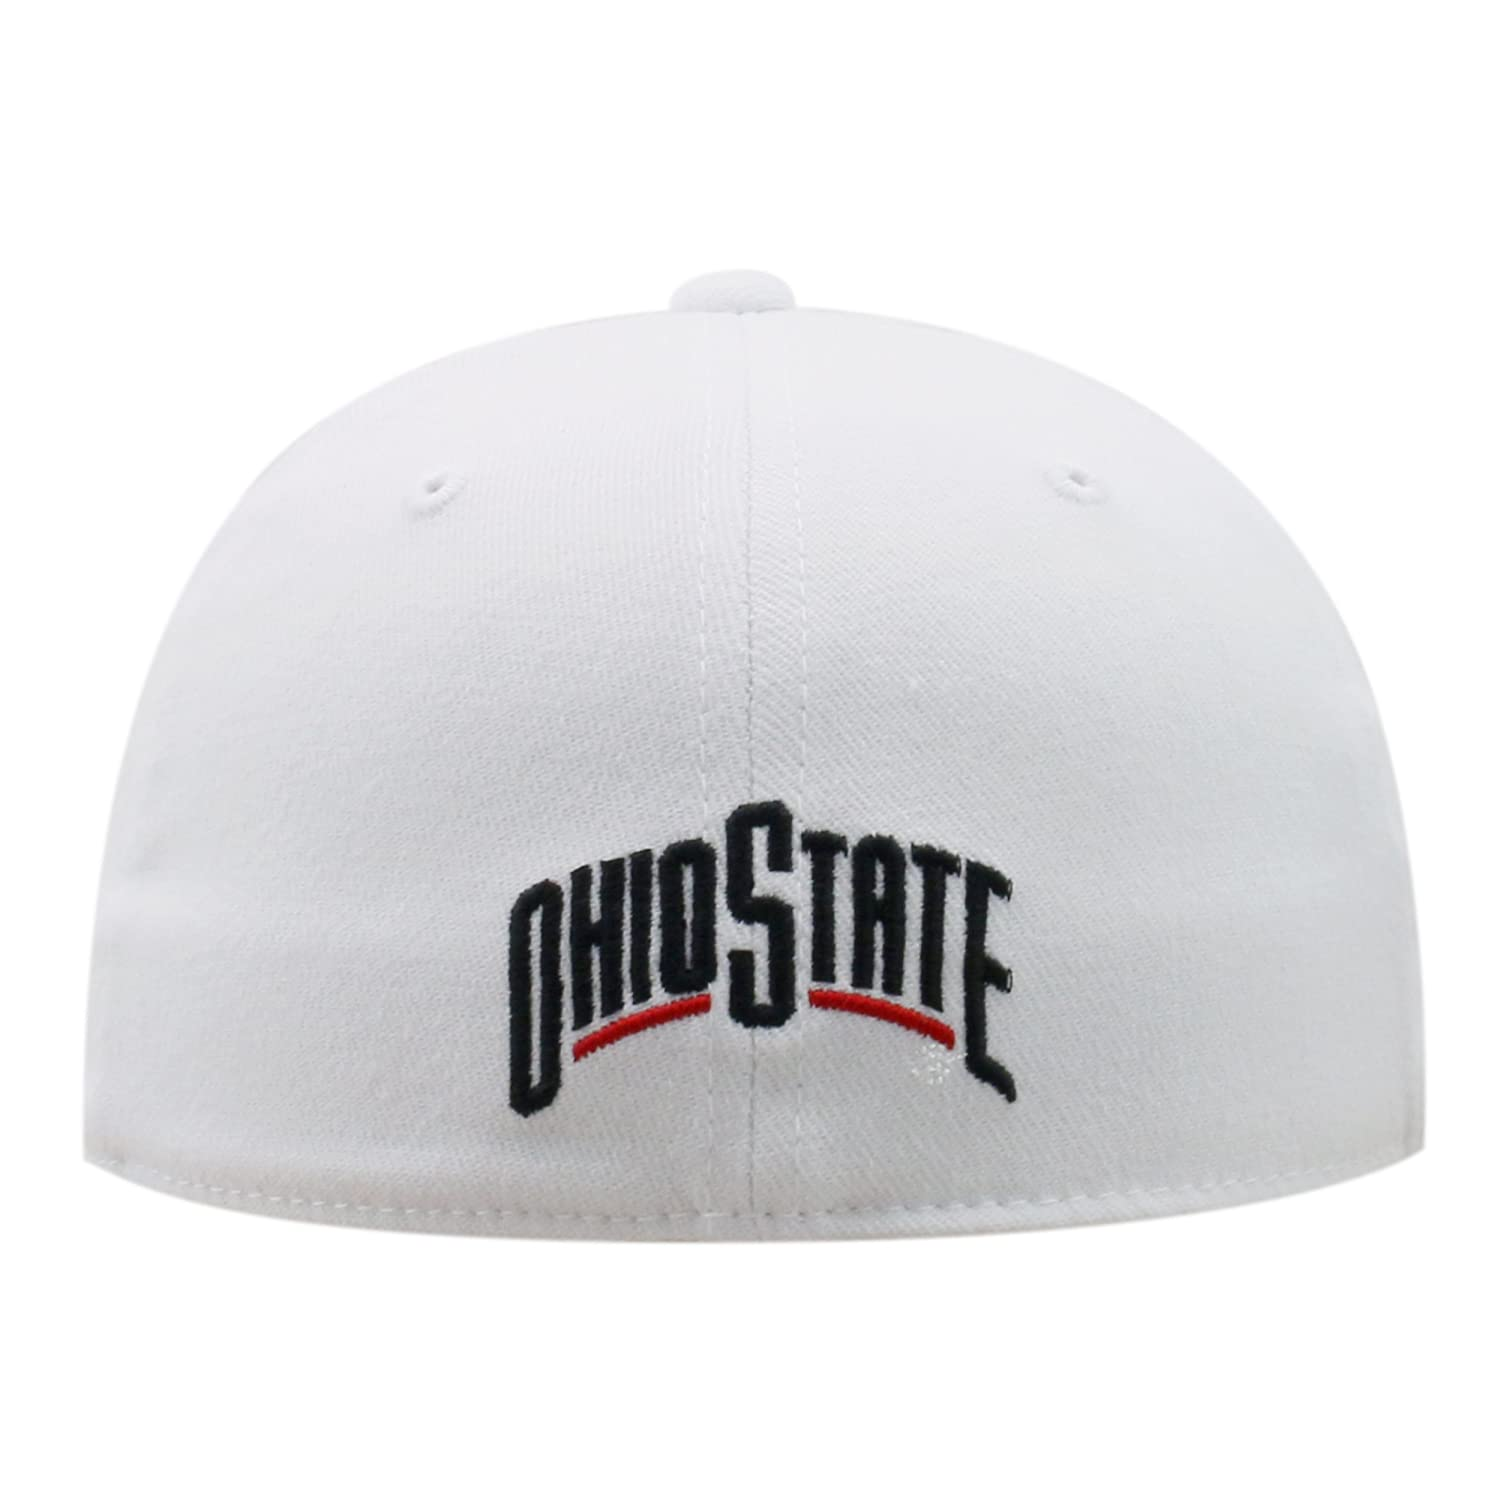 huge discount 9e0ed 6f7fd Amazon.com   Ohio State Buckeyes Premium Hat - Fitted, Memory Fit (Red,  Black, White) (Black)   Sports   Outdoors